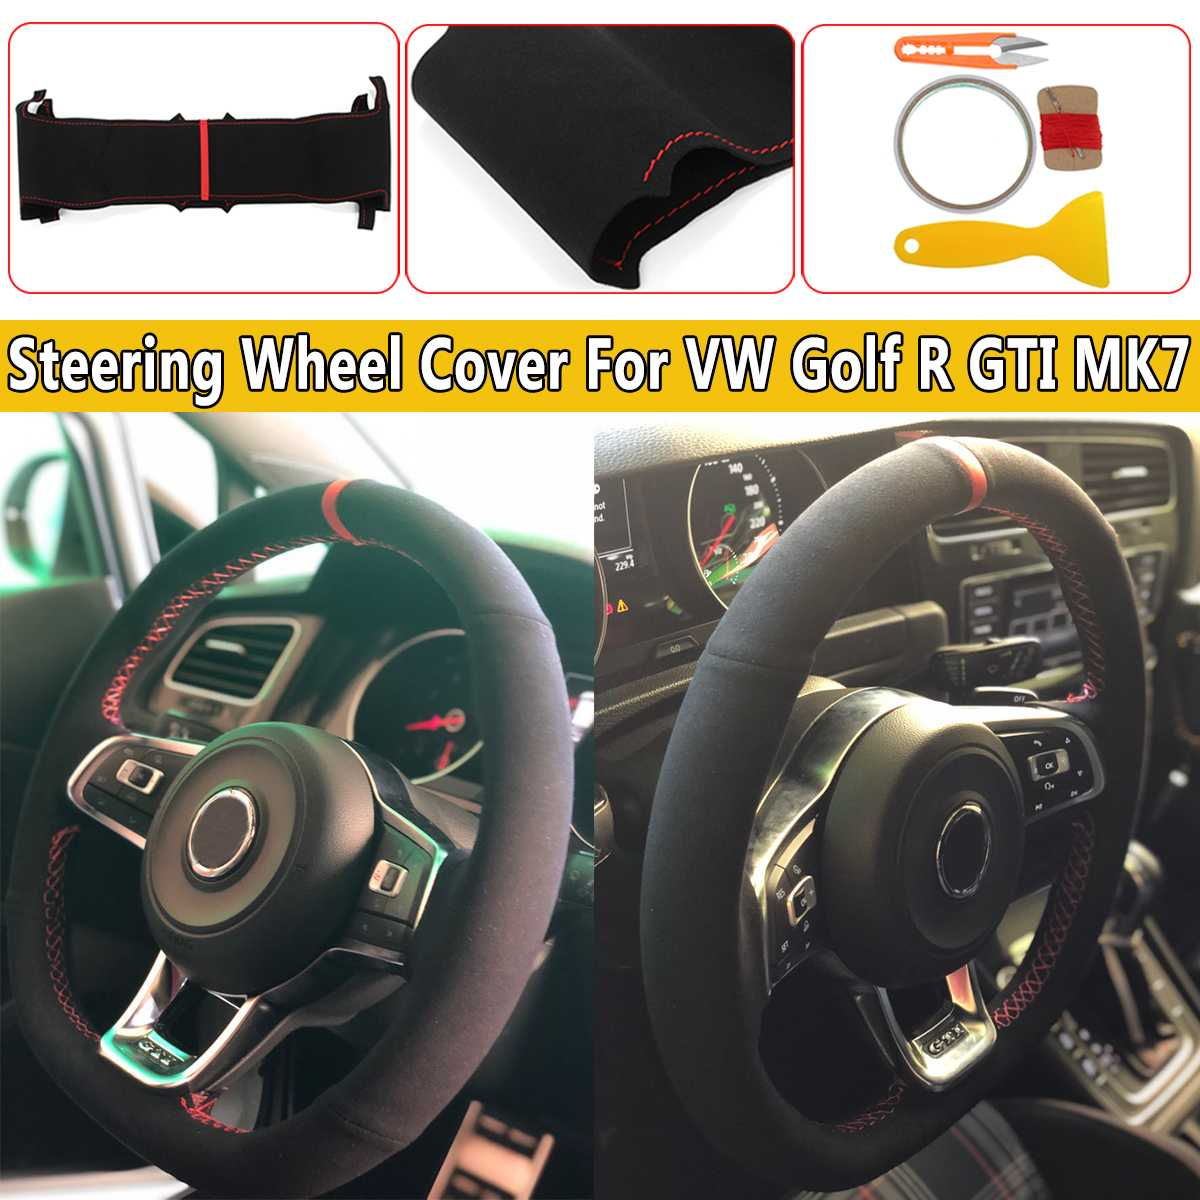 Mk7 Golf R >> Us 21 27 22 Off For Vw Golf R Gti Mk7 Golf 4 5 6 Mk5 6 For Polo Passat B5 6 Alhambra Suede Leather Steering Wheel Hand Stitch On Wrap Cover In